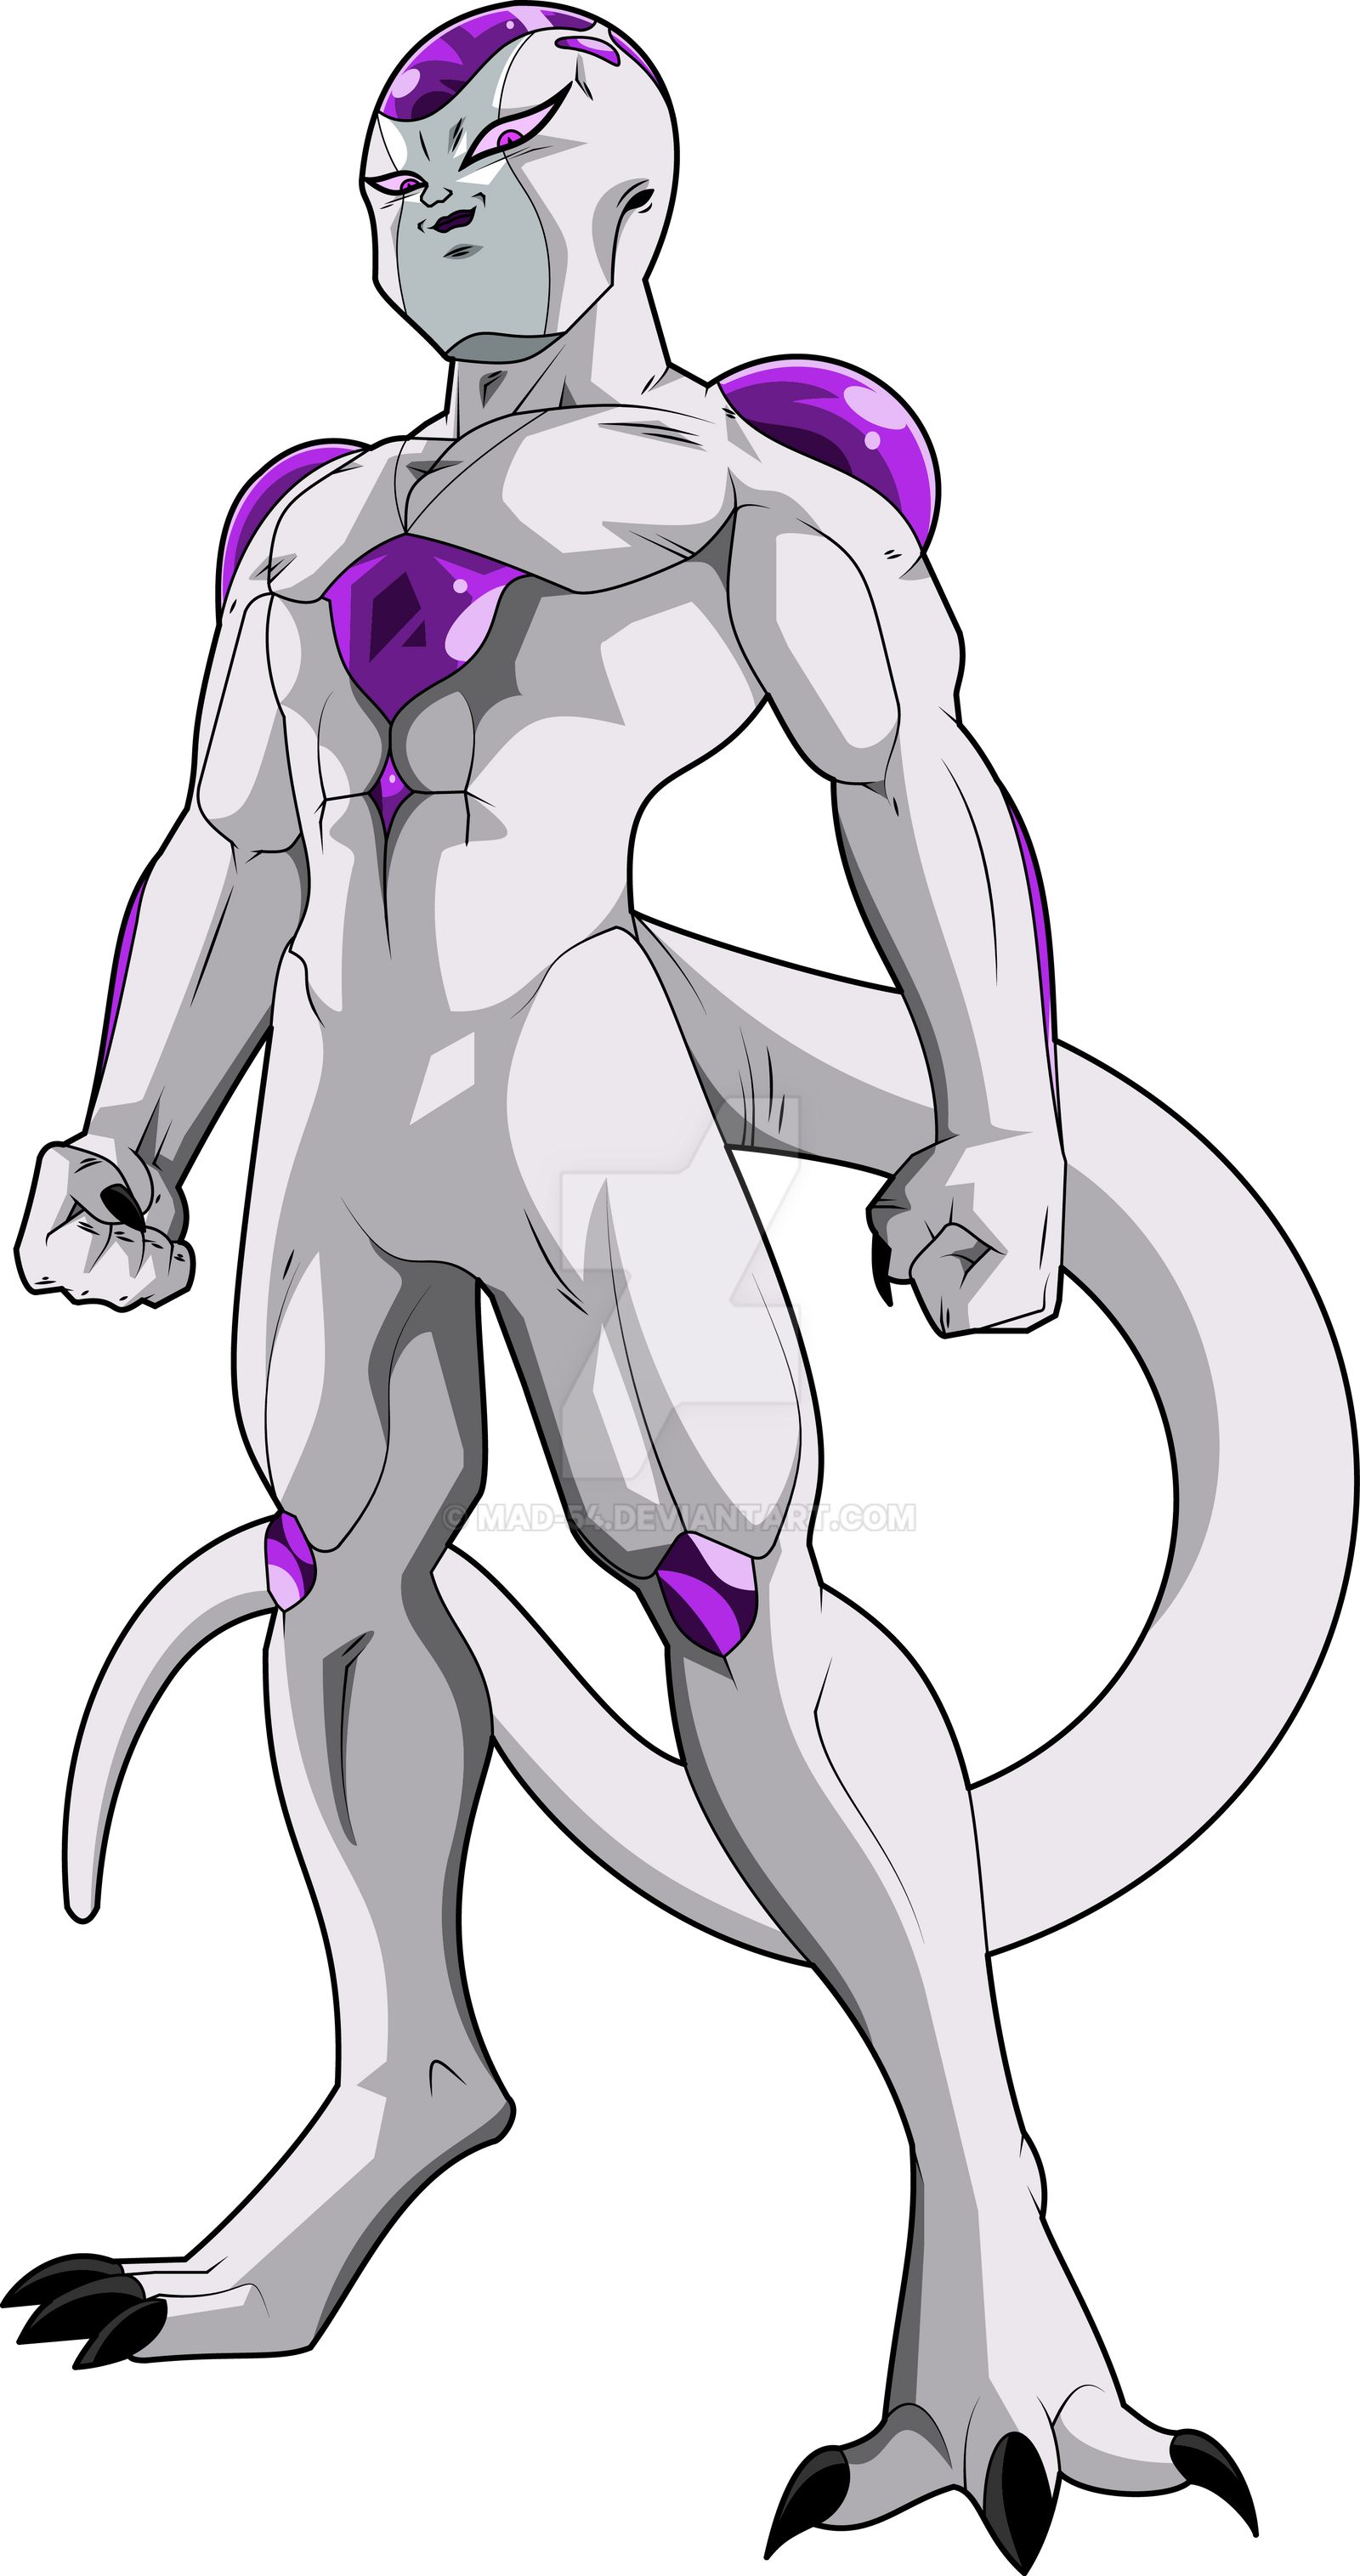 Frieza Final Form (Frieza Saga) MLL Redesign by MAD-54 on DeviantArt